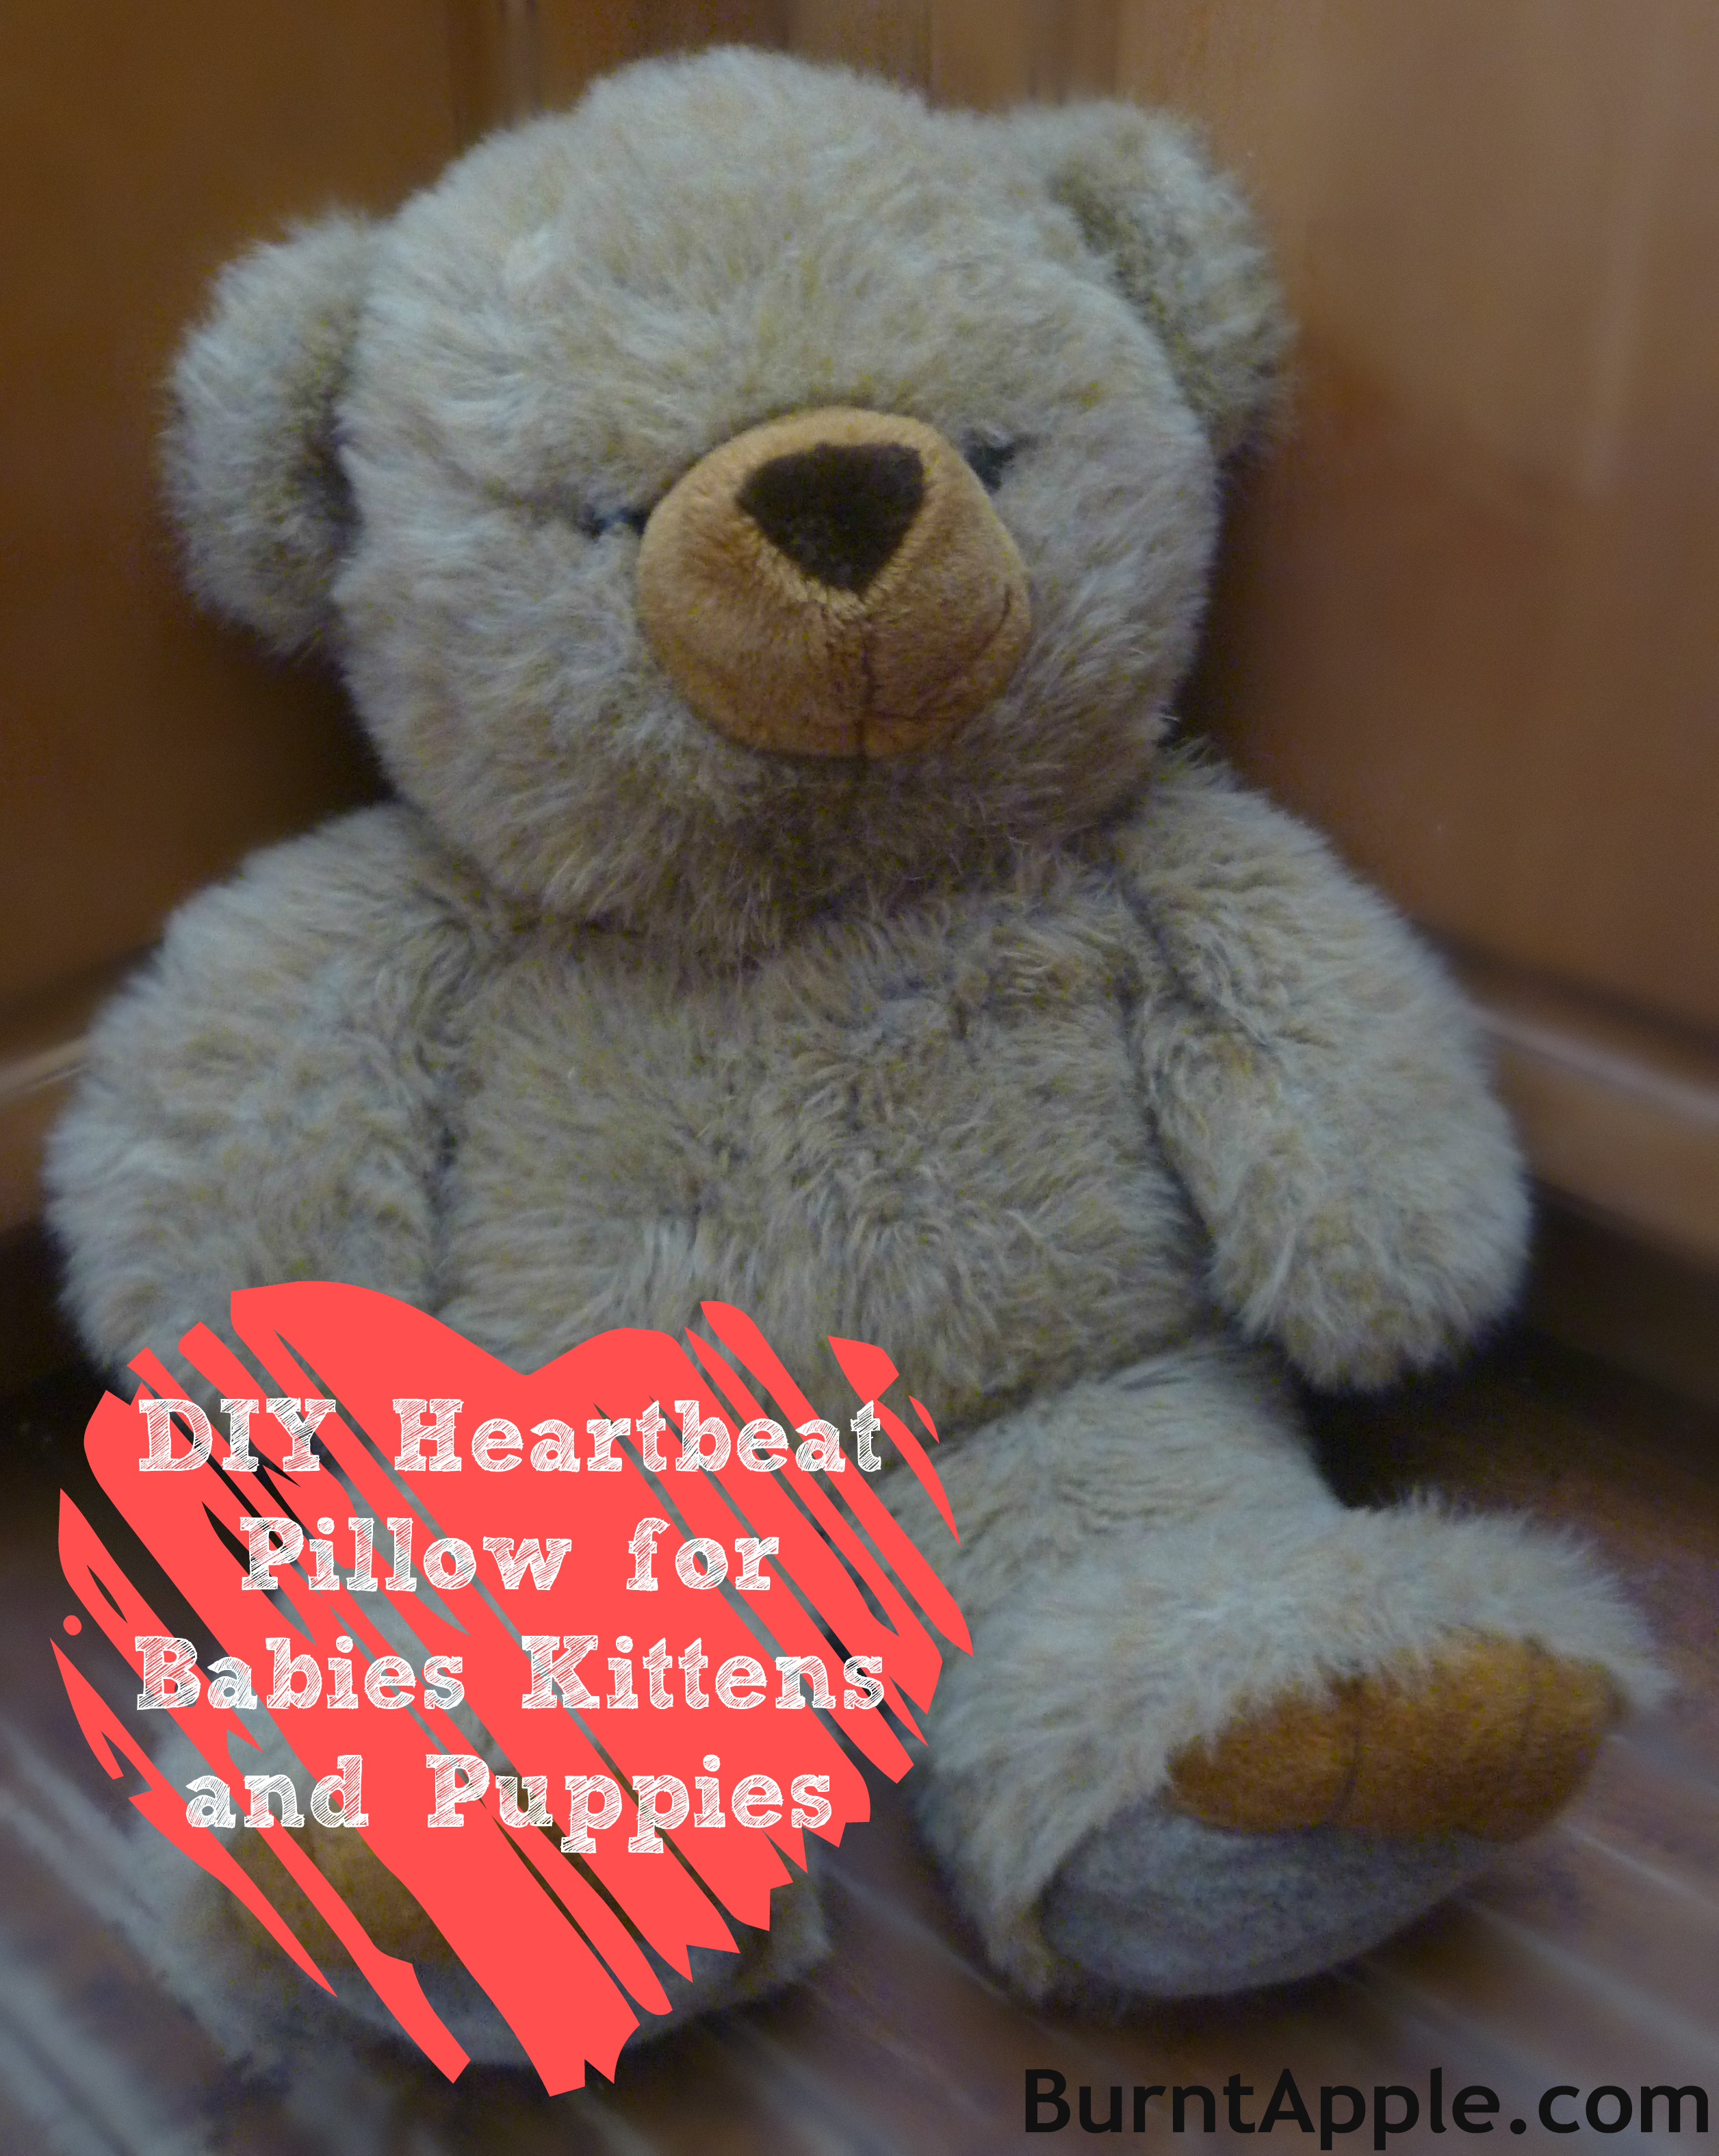 Diy Heartbeat Pillow For Puppies Kittens And Babies Burnt Apple